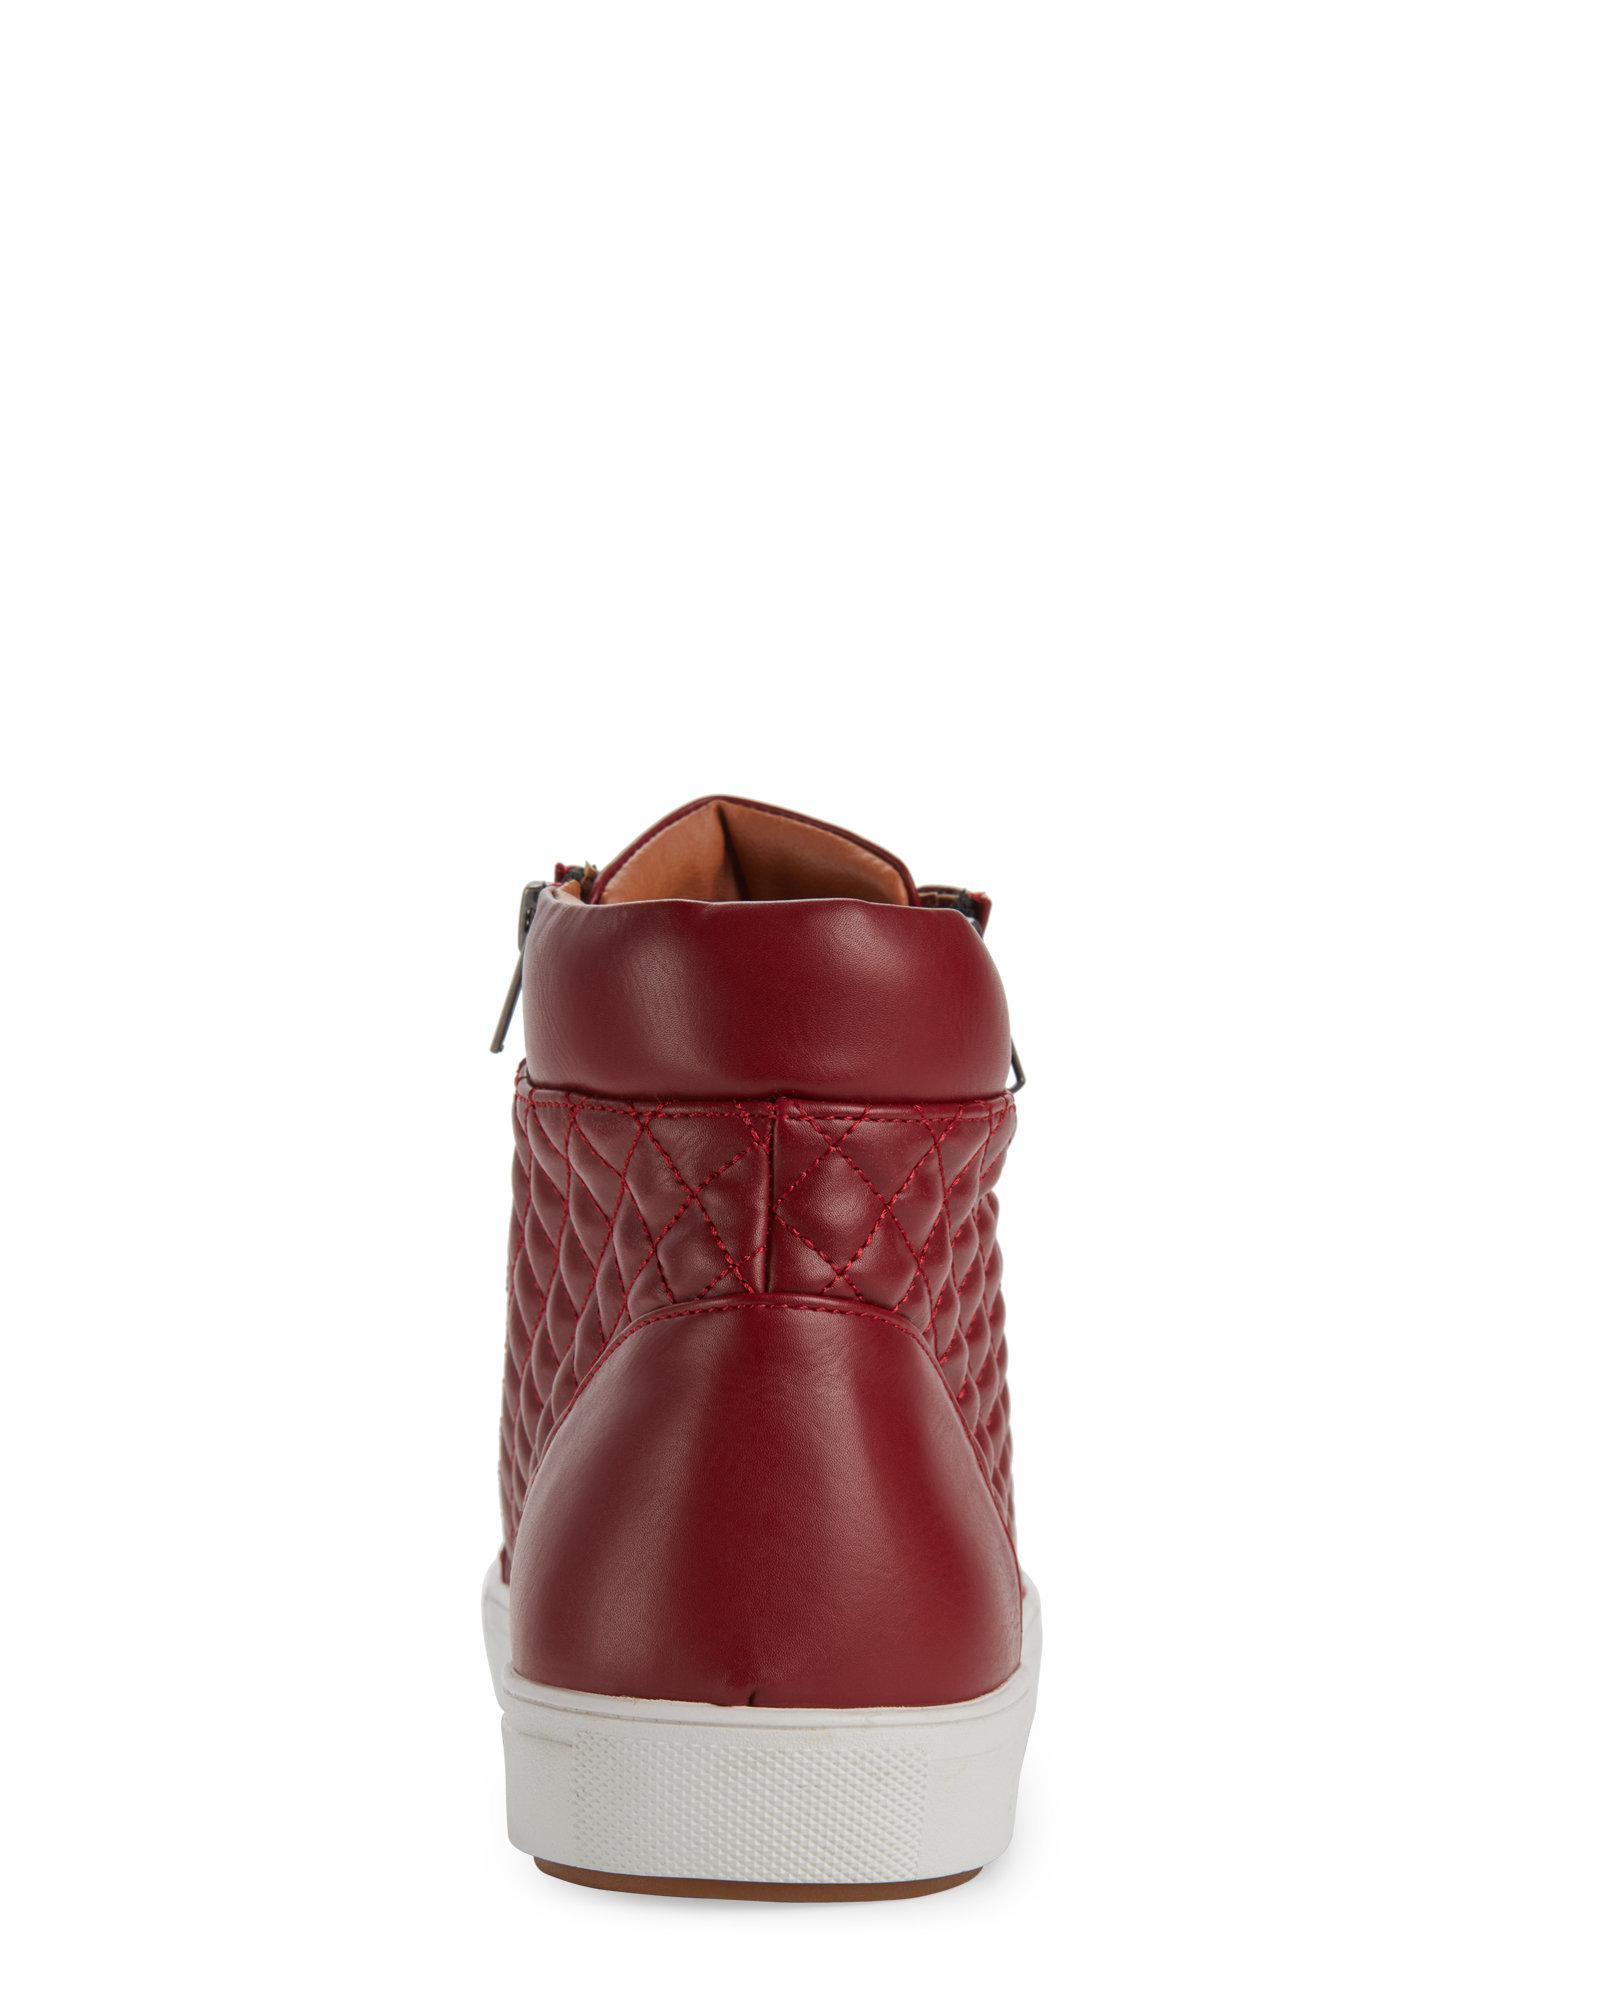 ec6ea4c8263 Lyst - Steve Madden Red Quodis Quilted High Top Sneakers in Red for Men